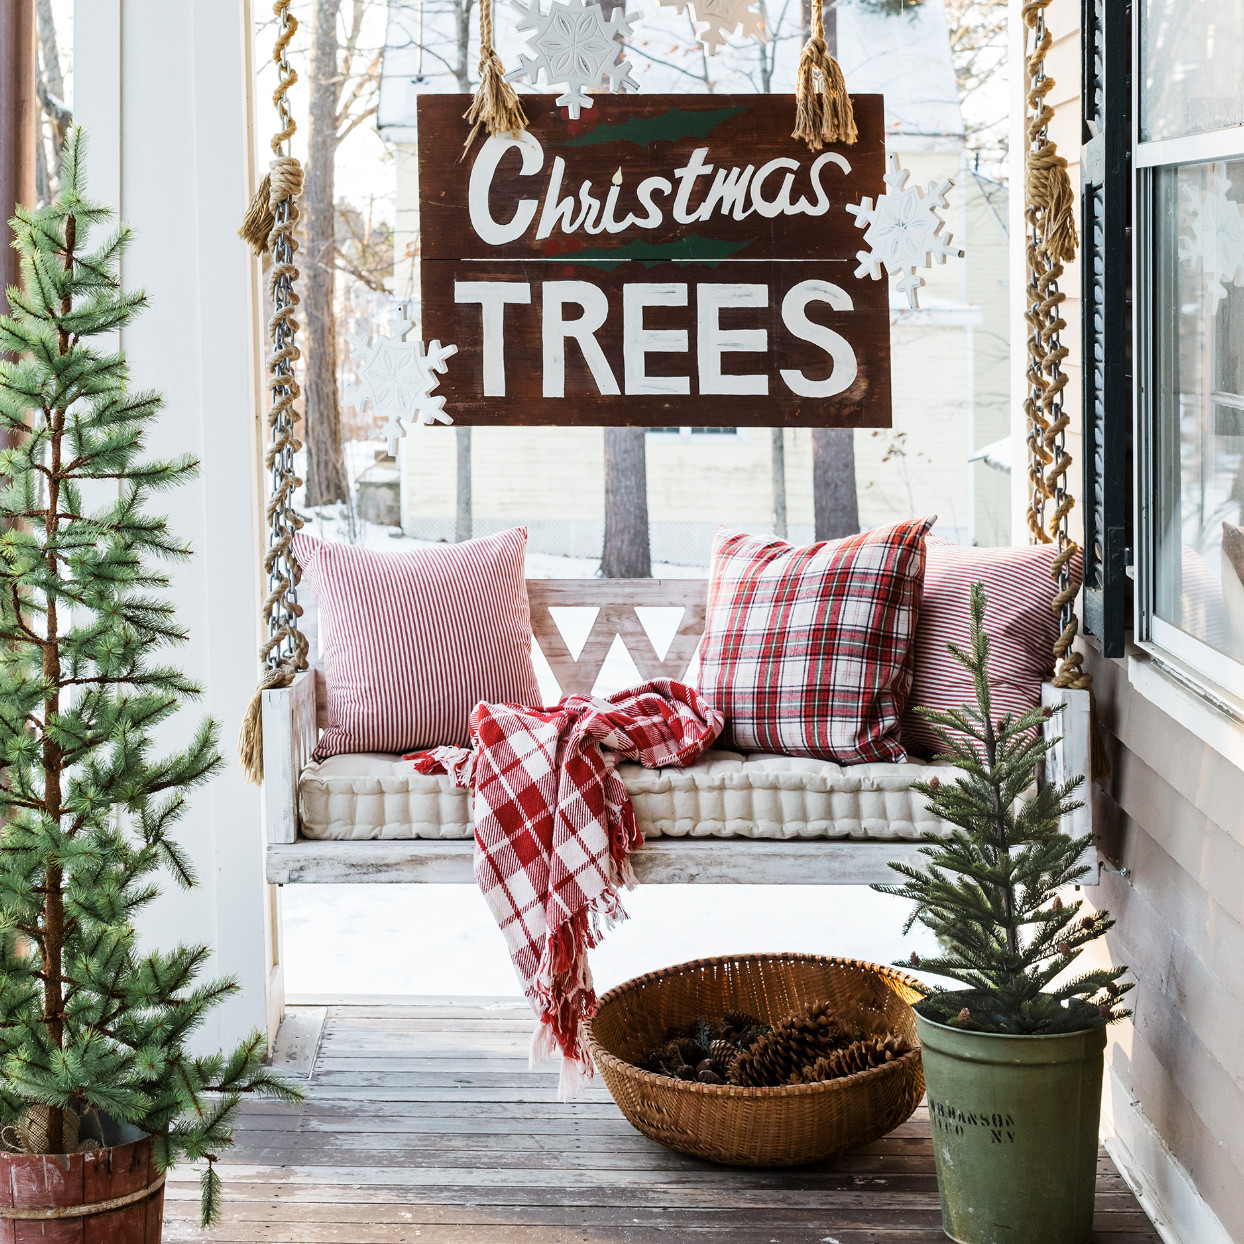 Deck Your Halls $10,000 Sweepstakes